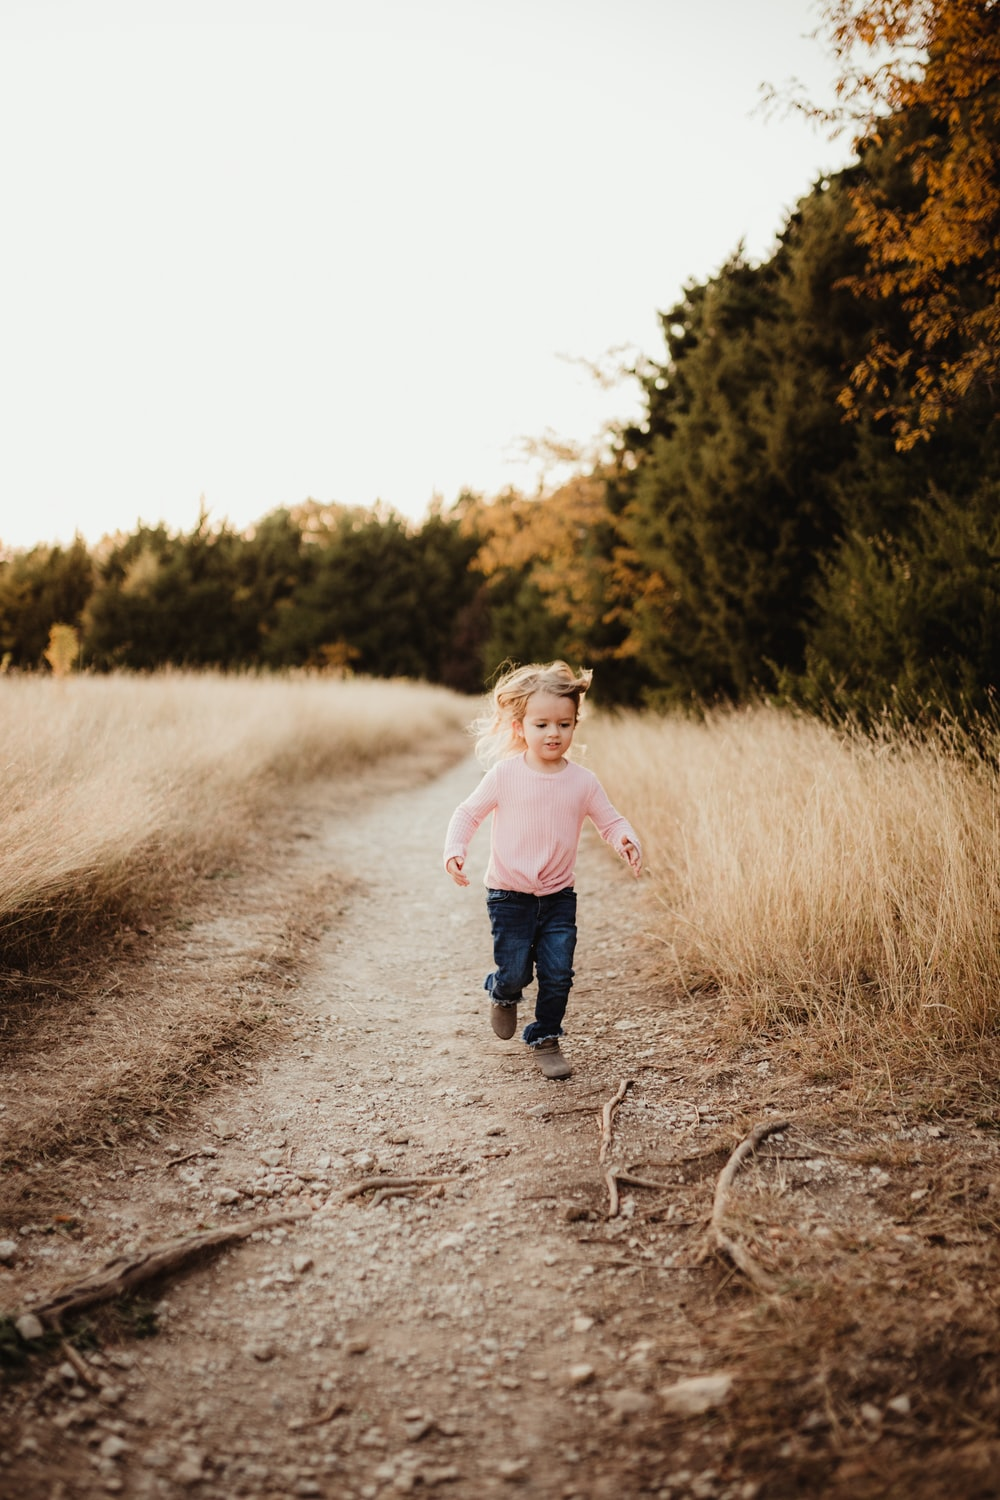 girl in white long sleeve shirt and blue denim jeans running on dirt road during daytime